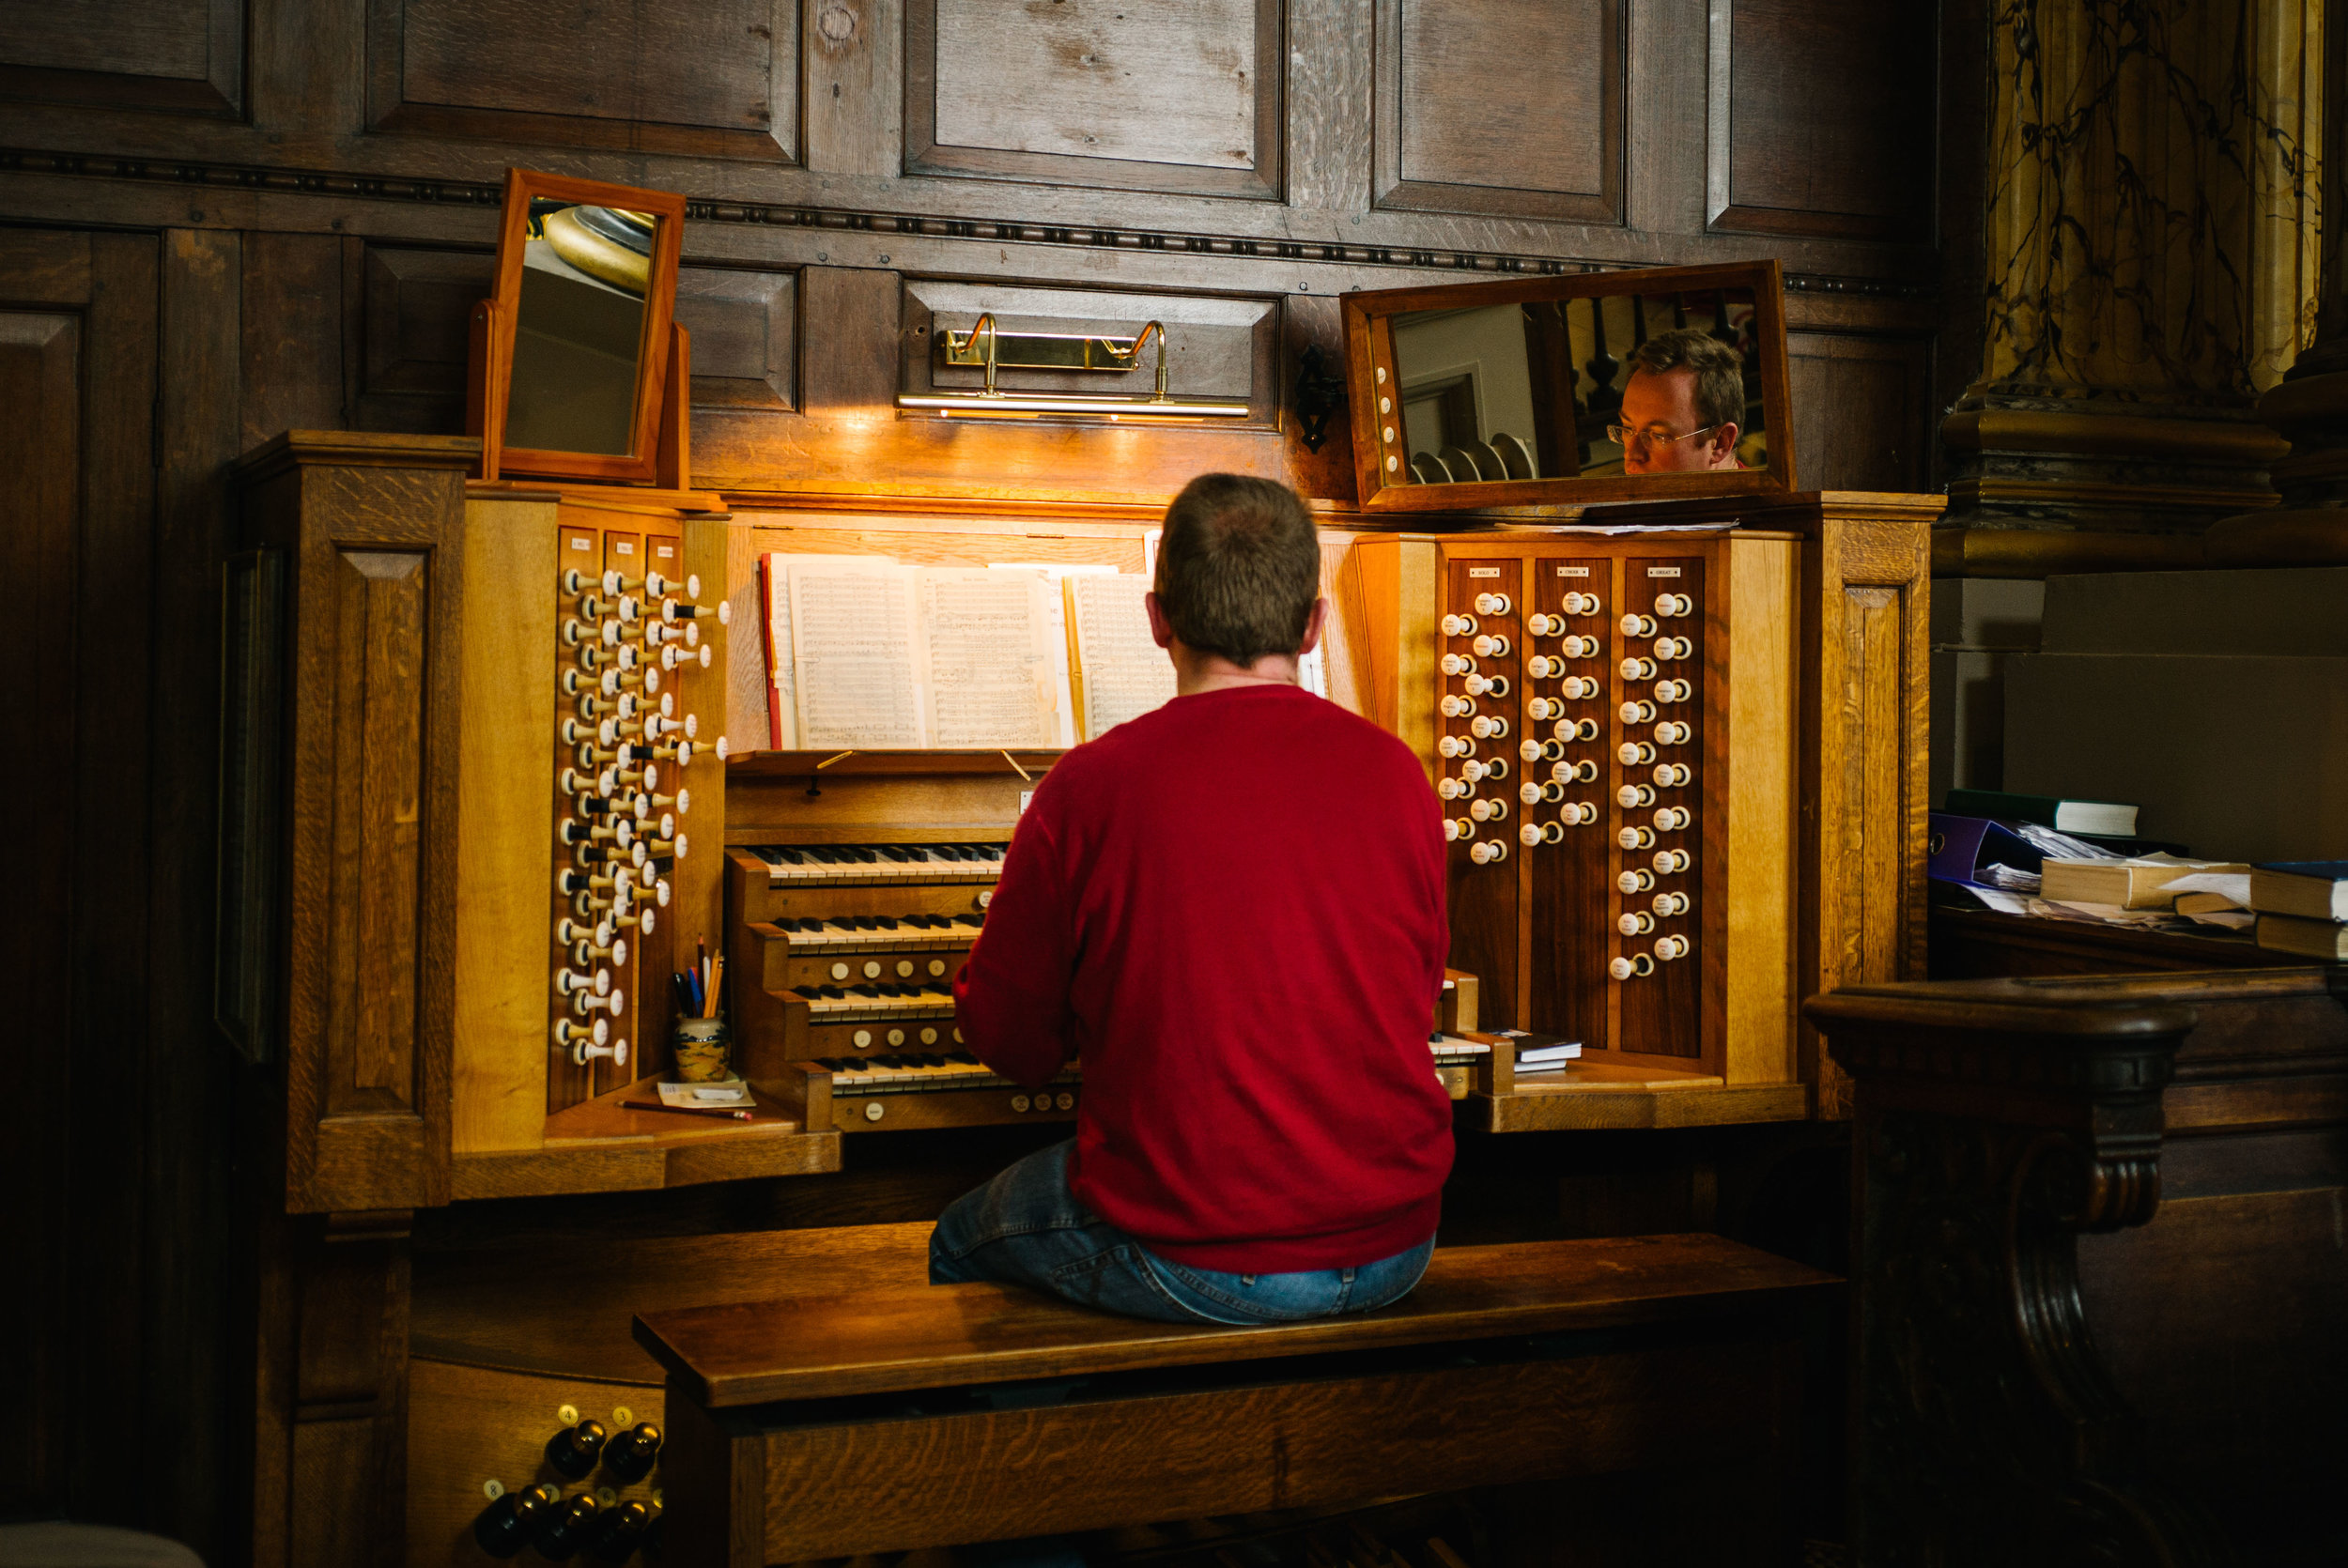 Practicing the organ - Clifford Darby 2017